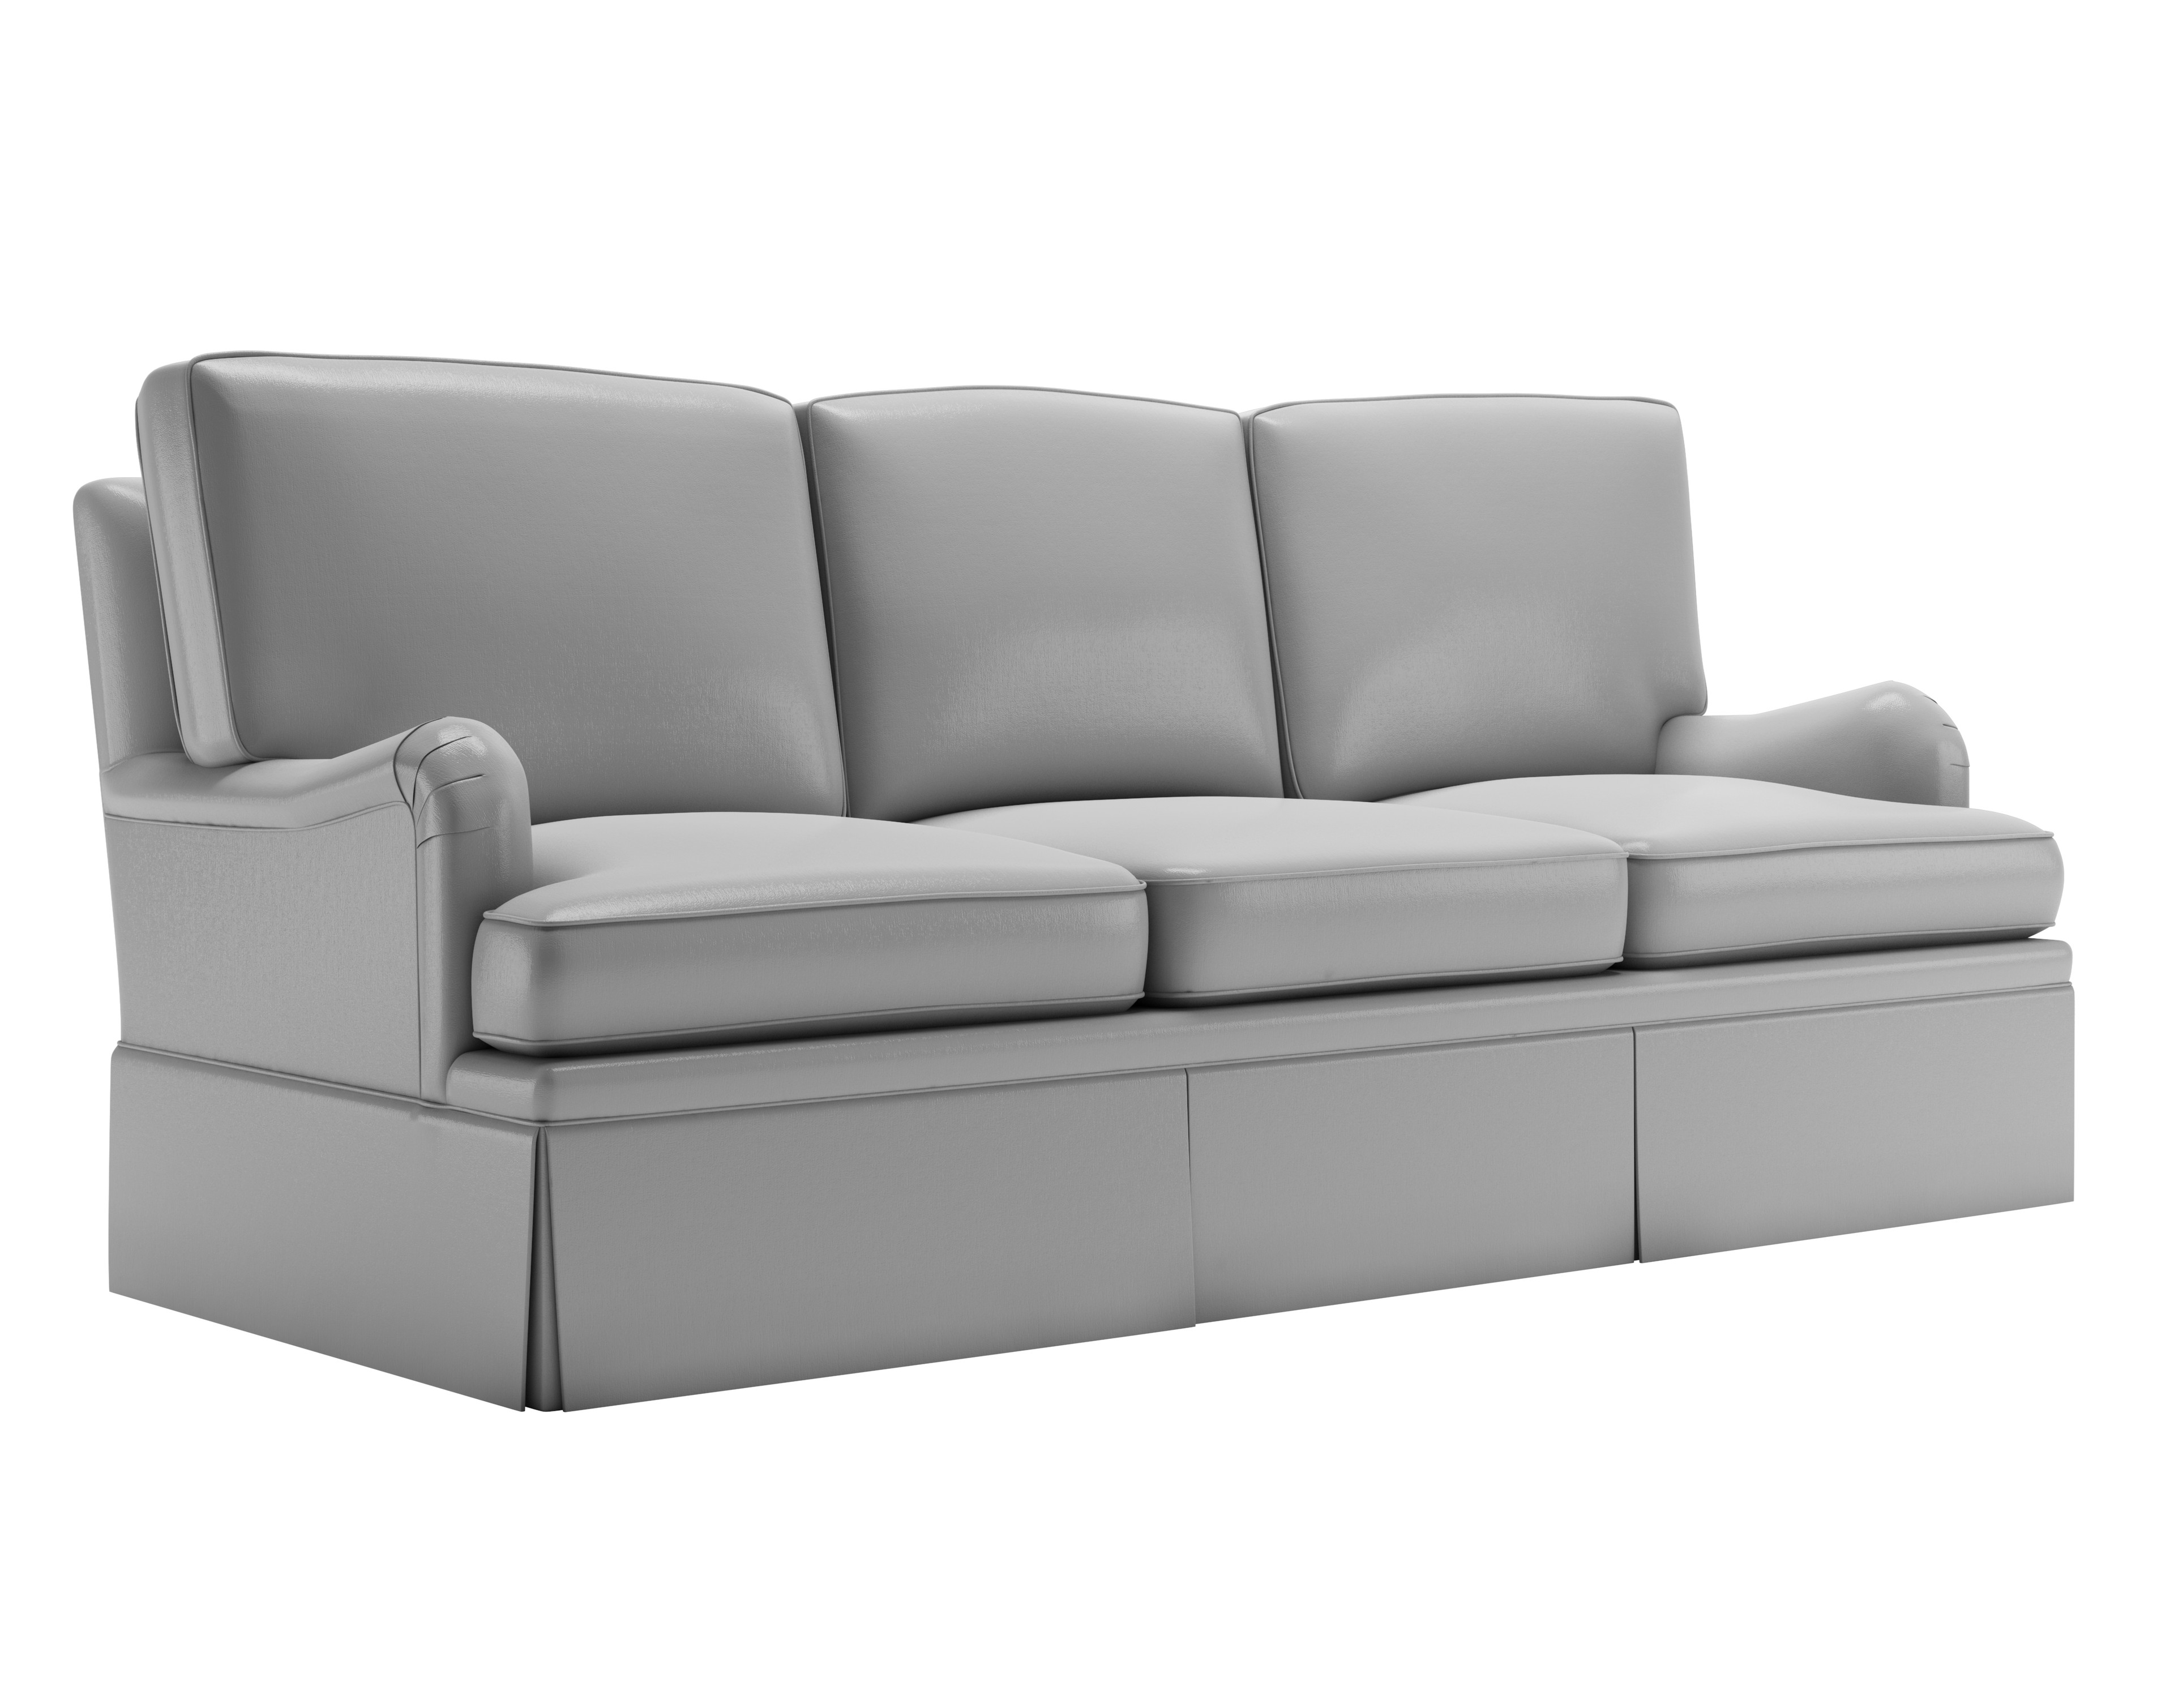 Sofa Style 1 - Clay Render